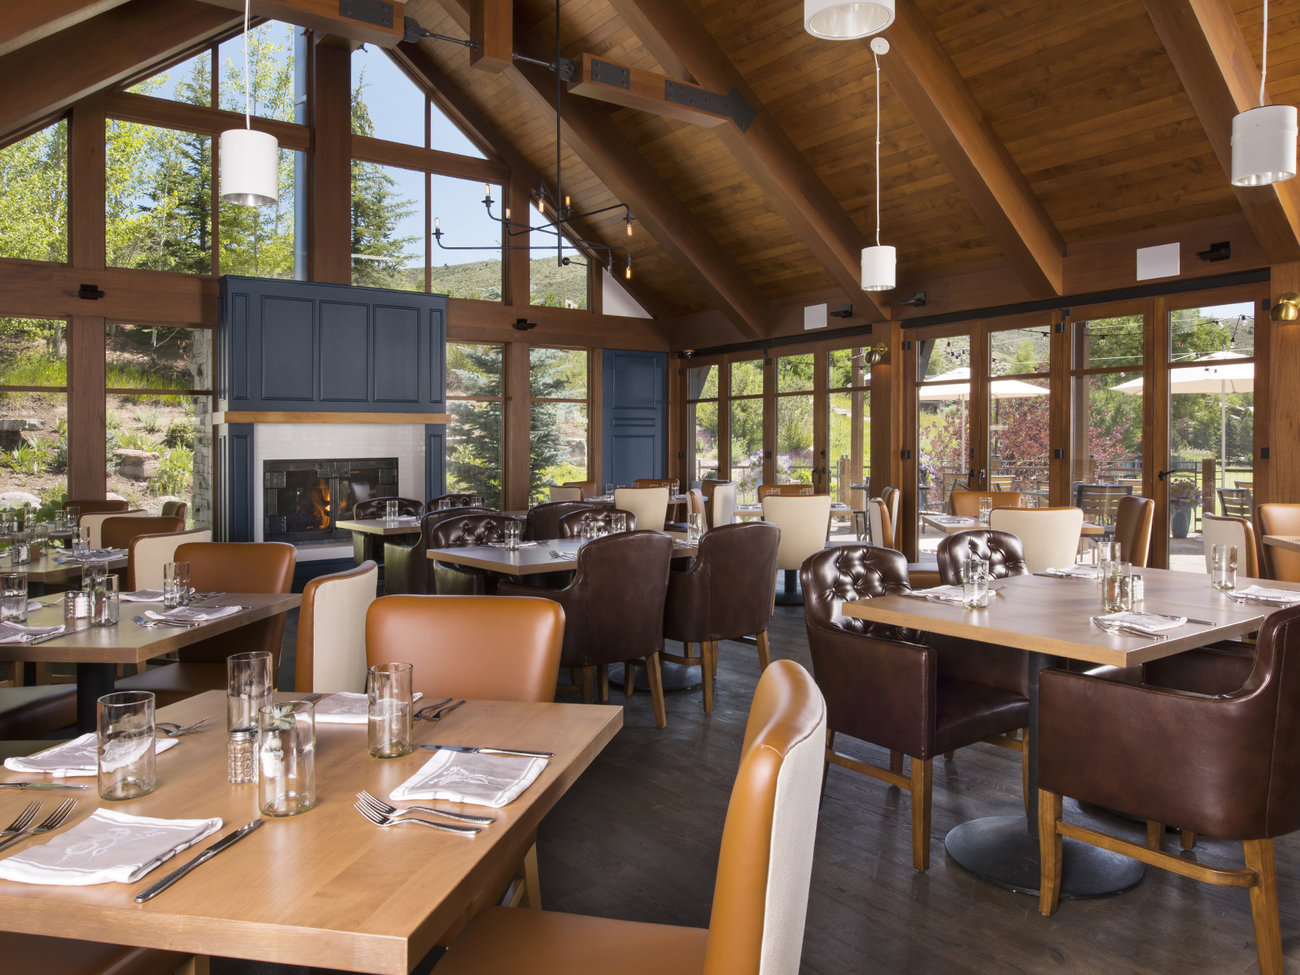 Harvest by Kelly Liken Restaurant in Vail